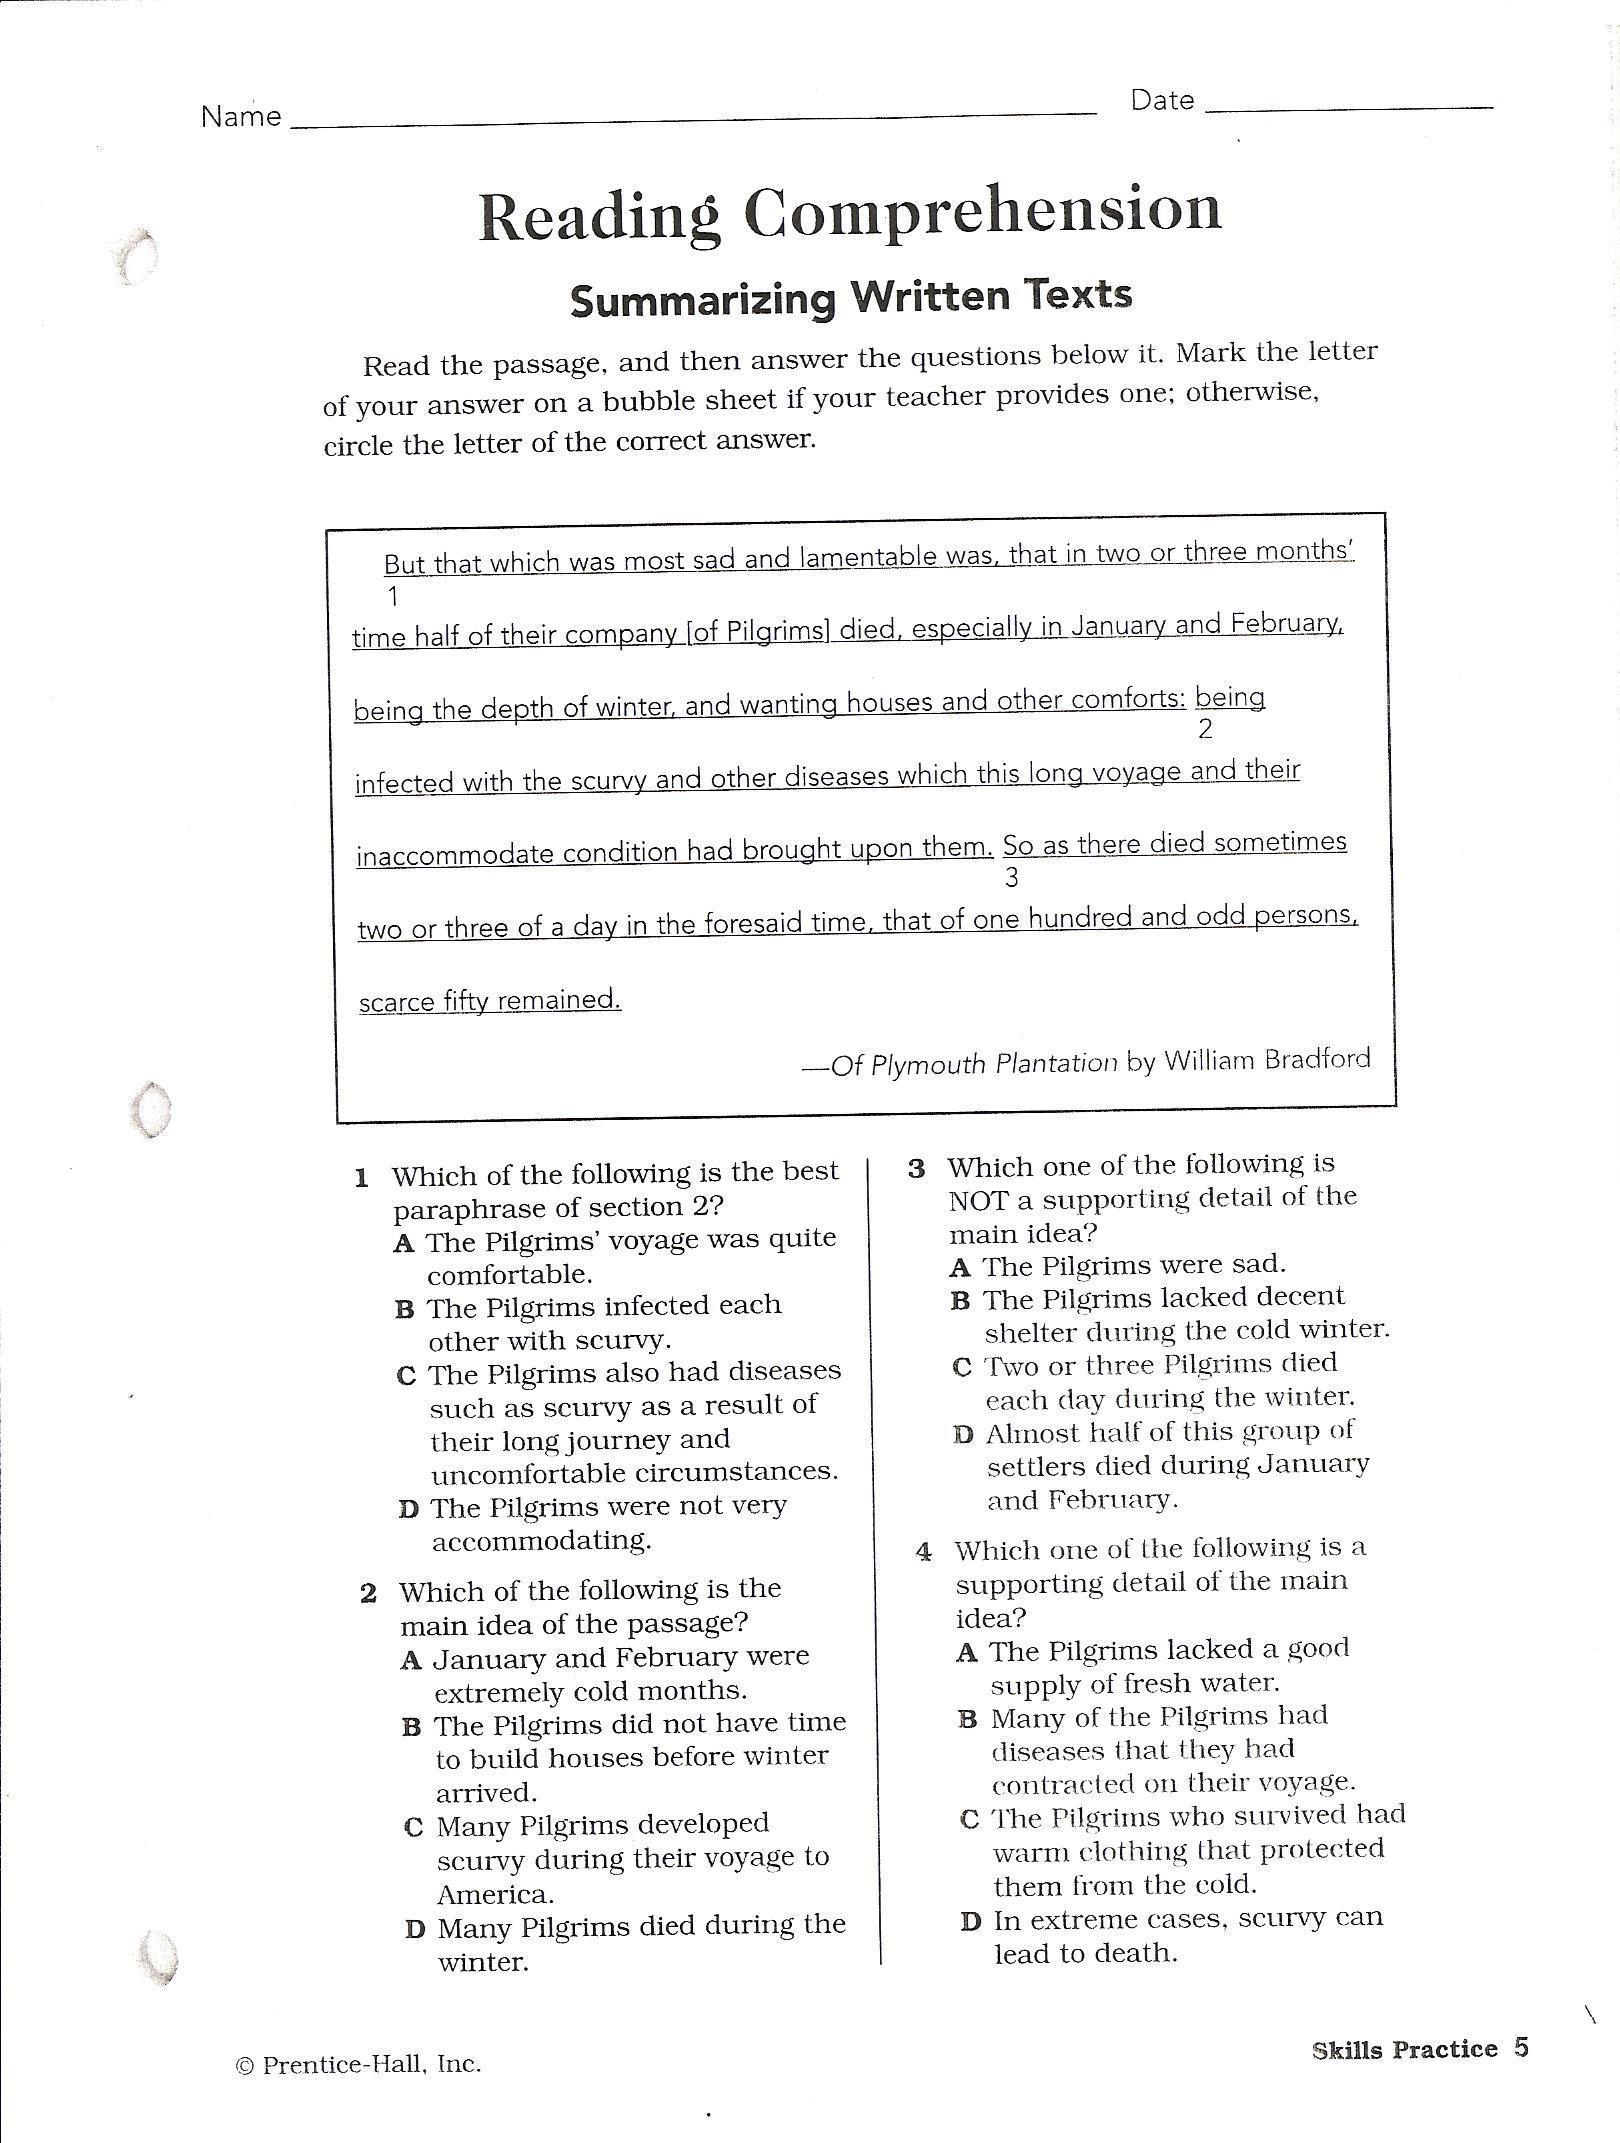 Worksheet Elementary Reading Comprehension Test worksheet elementary reading comprehension test mikyu free canyon high school standardized testing star schedule comprehension